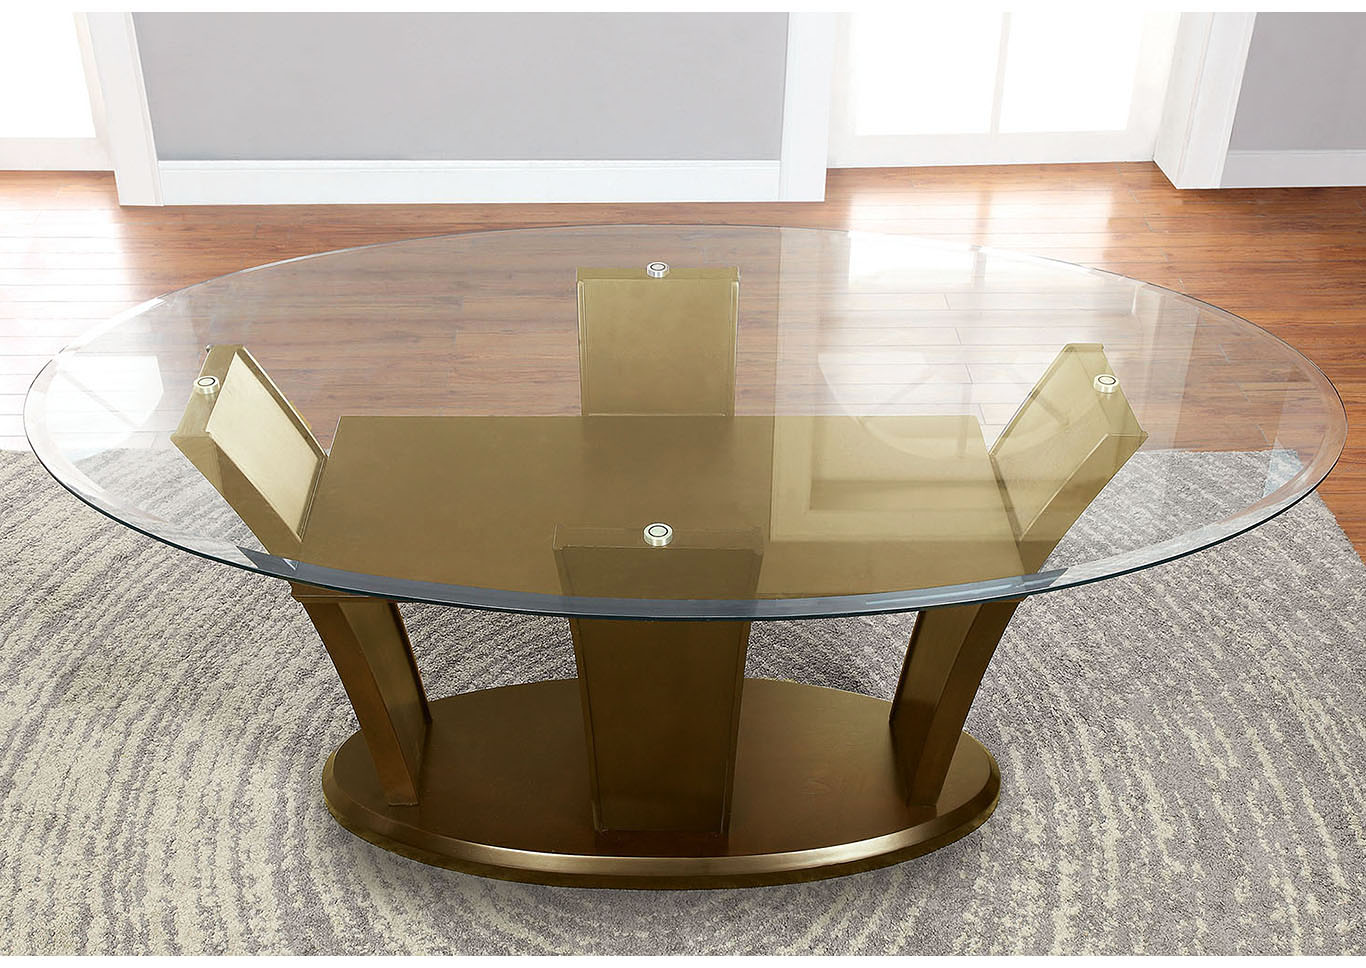 Furniture Ville Bronx Ny Manhattan L Oval Glass Top Dining Table